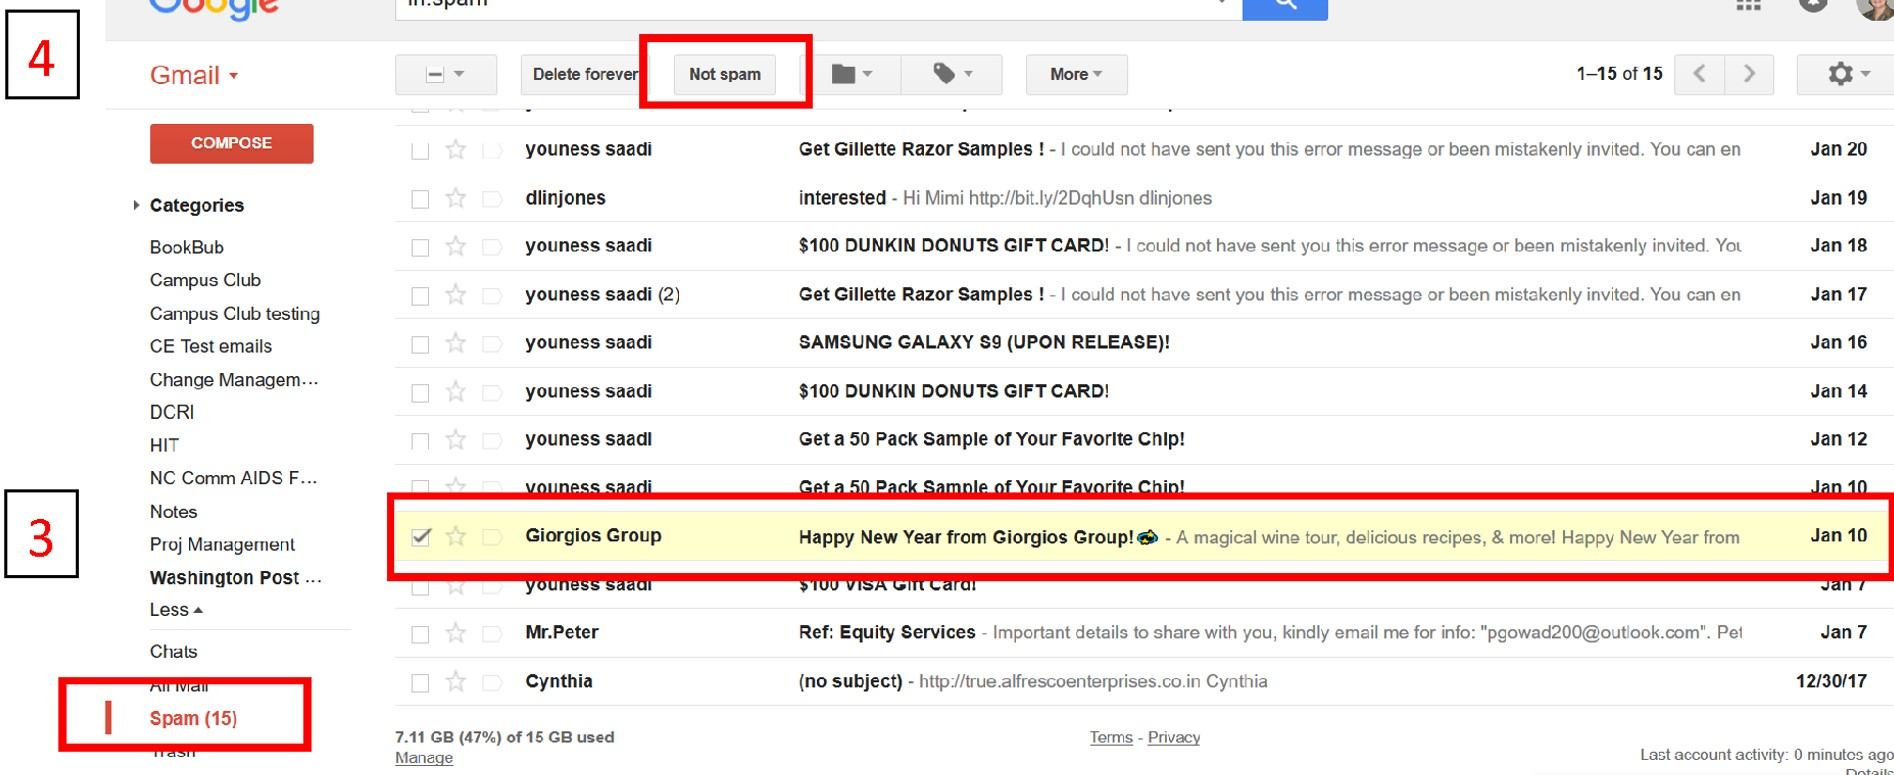 Not spam for Gmail 3